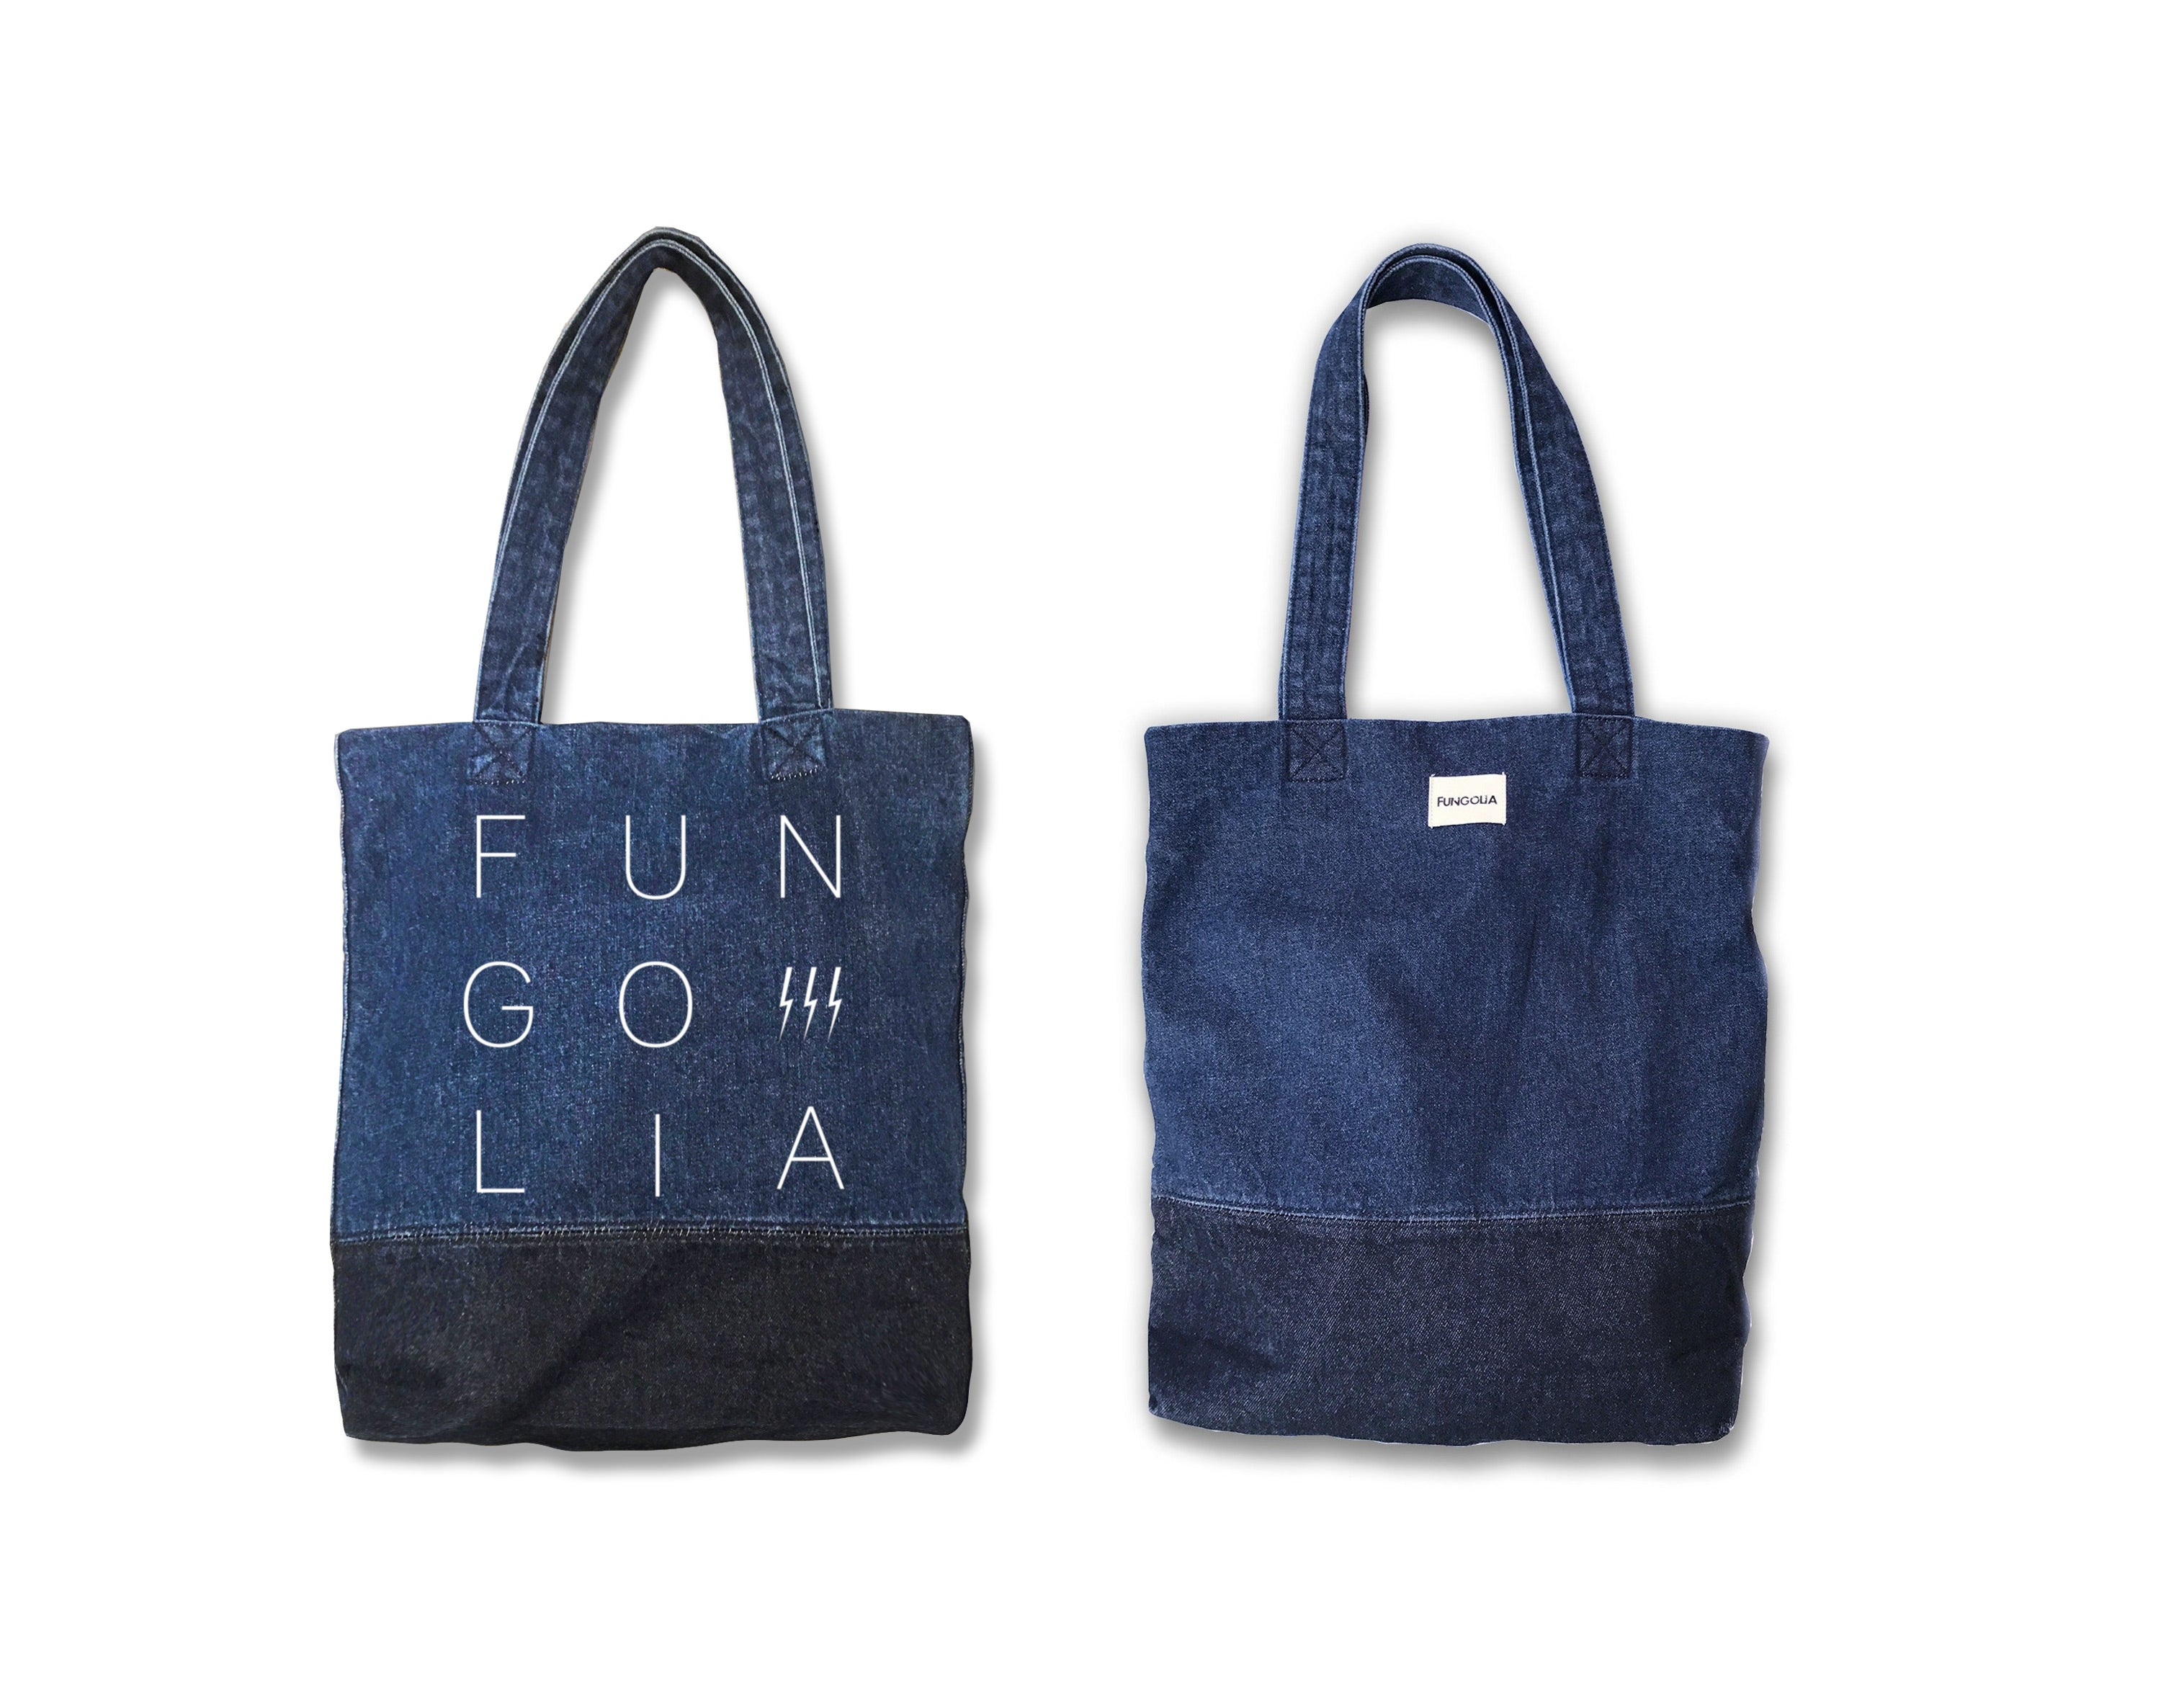 new york get online official images Fungolia Denim tote bag - FUN-GO-LIA Special Edition